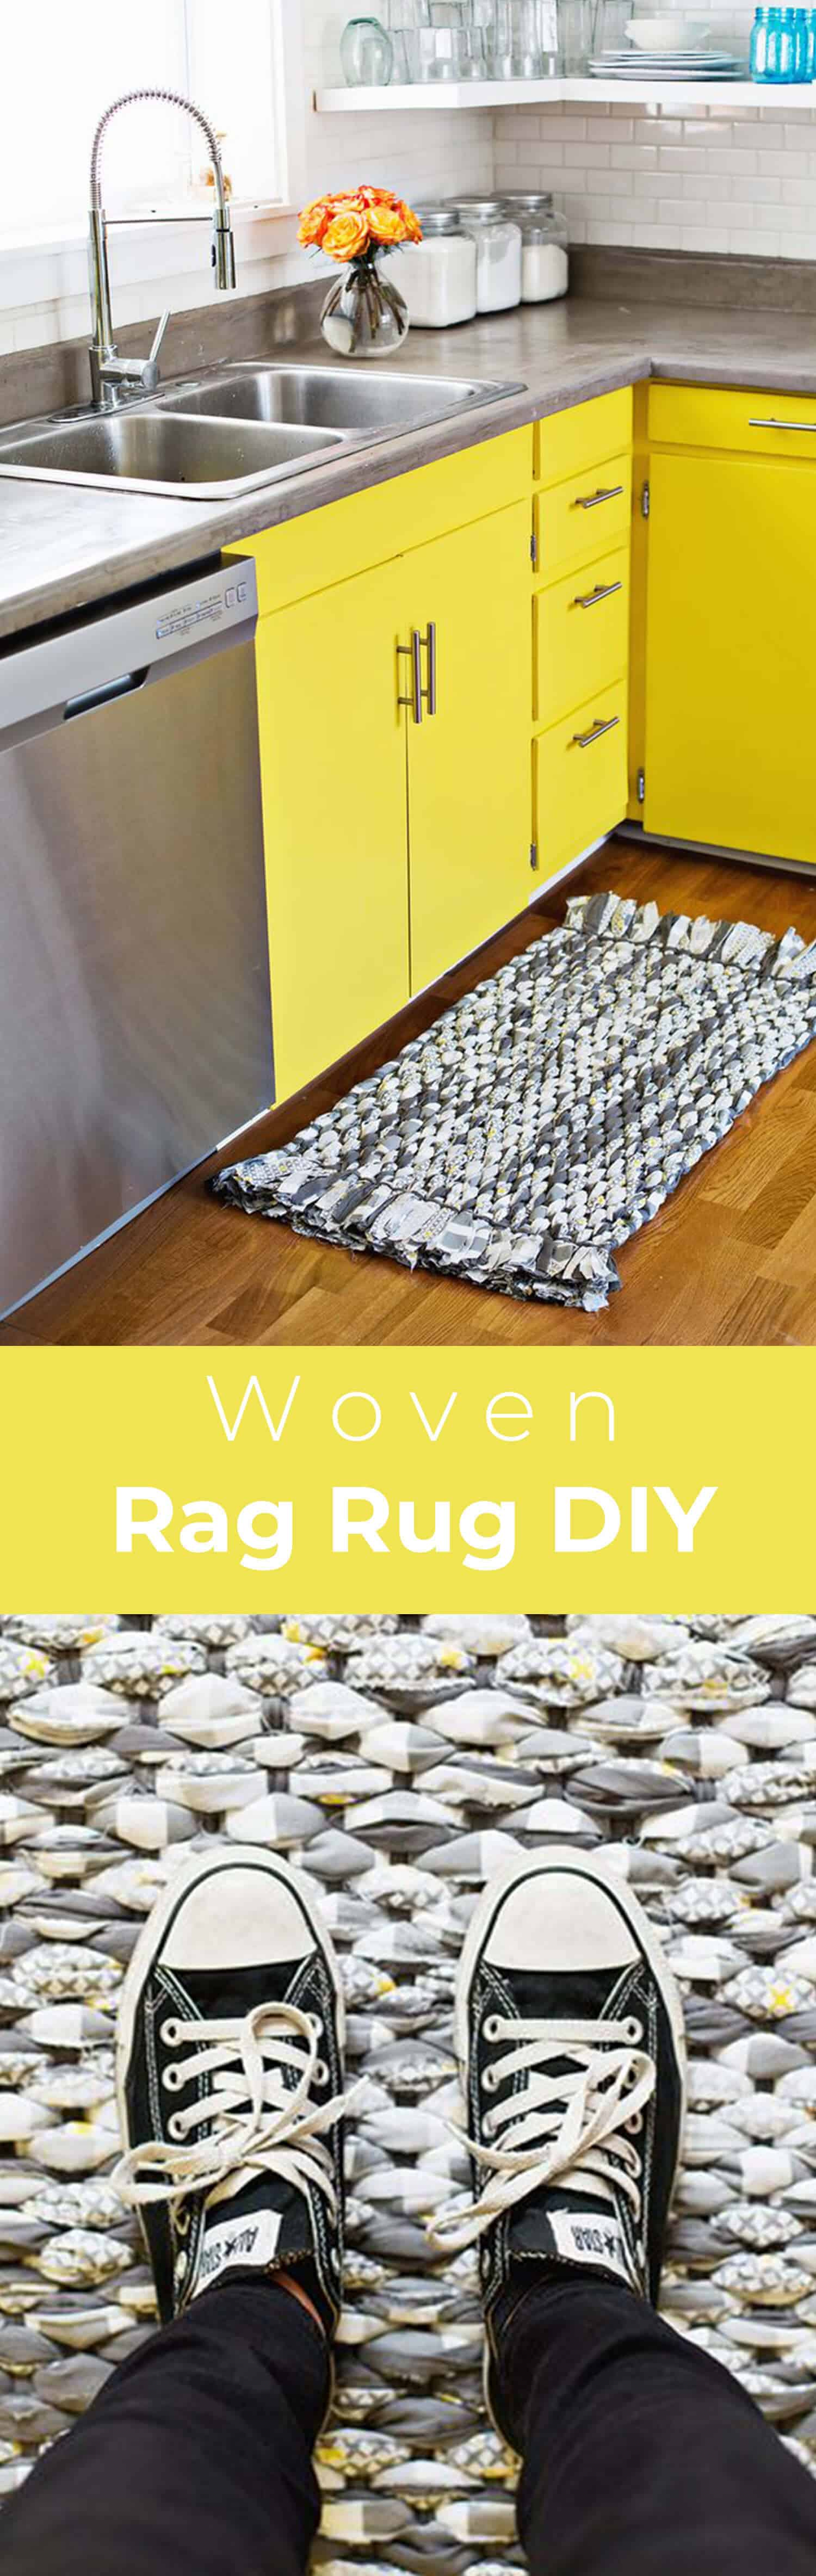 Make Your Own Woven Rag Rug - A